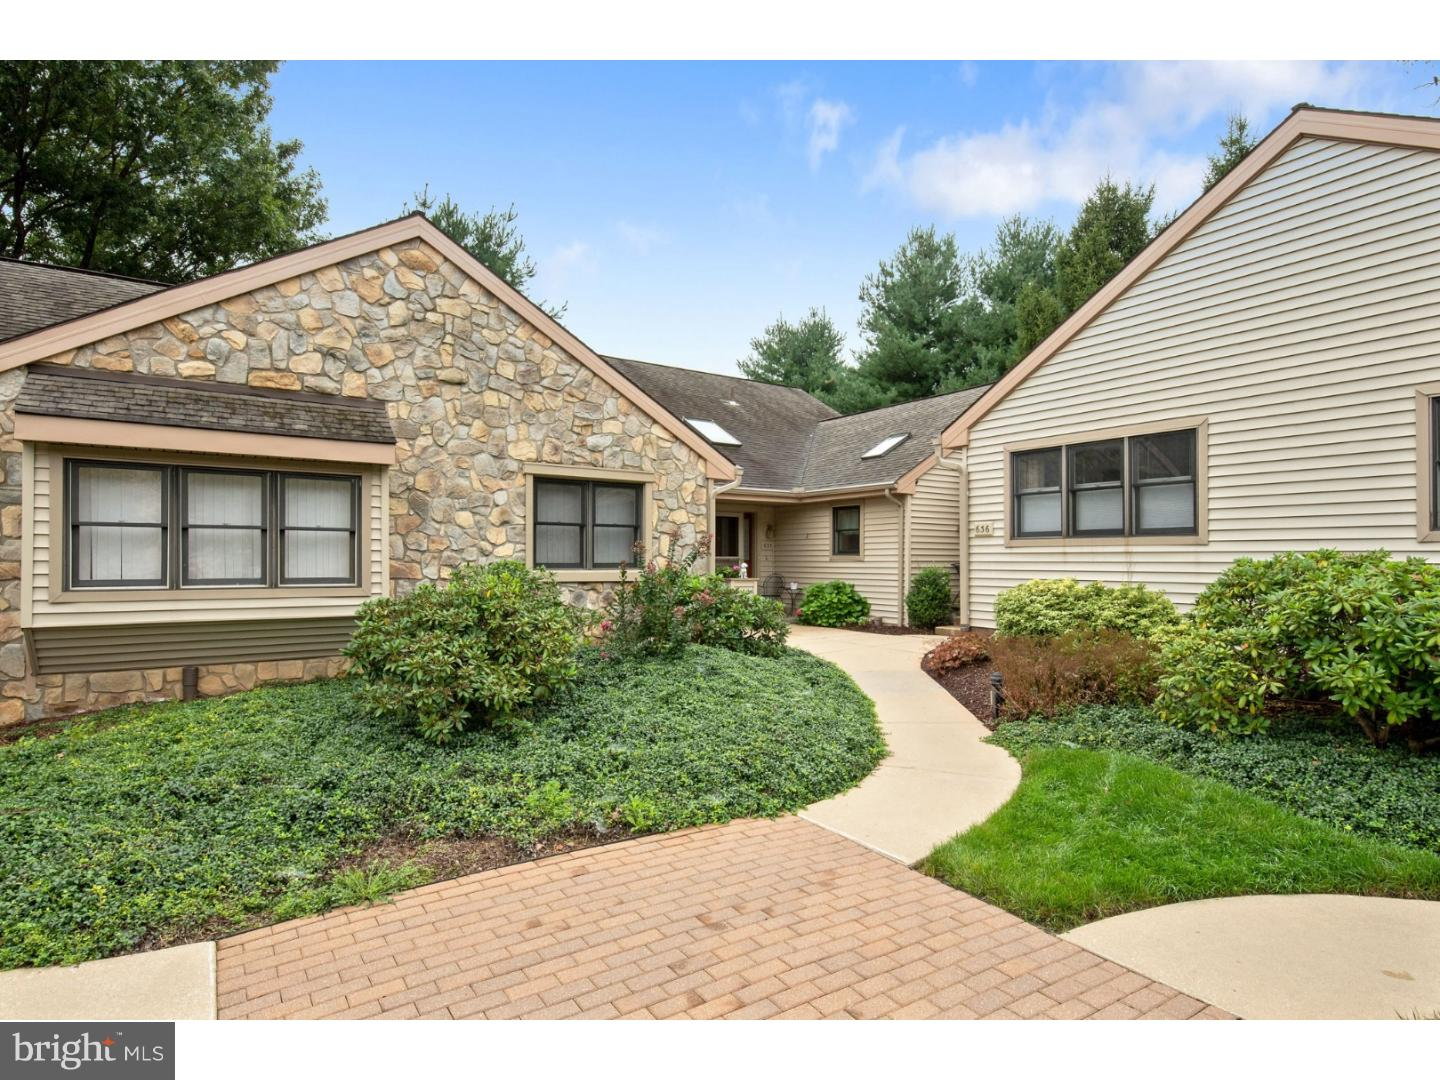 635 Glenwood Lane West Chester, PA 19380